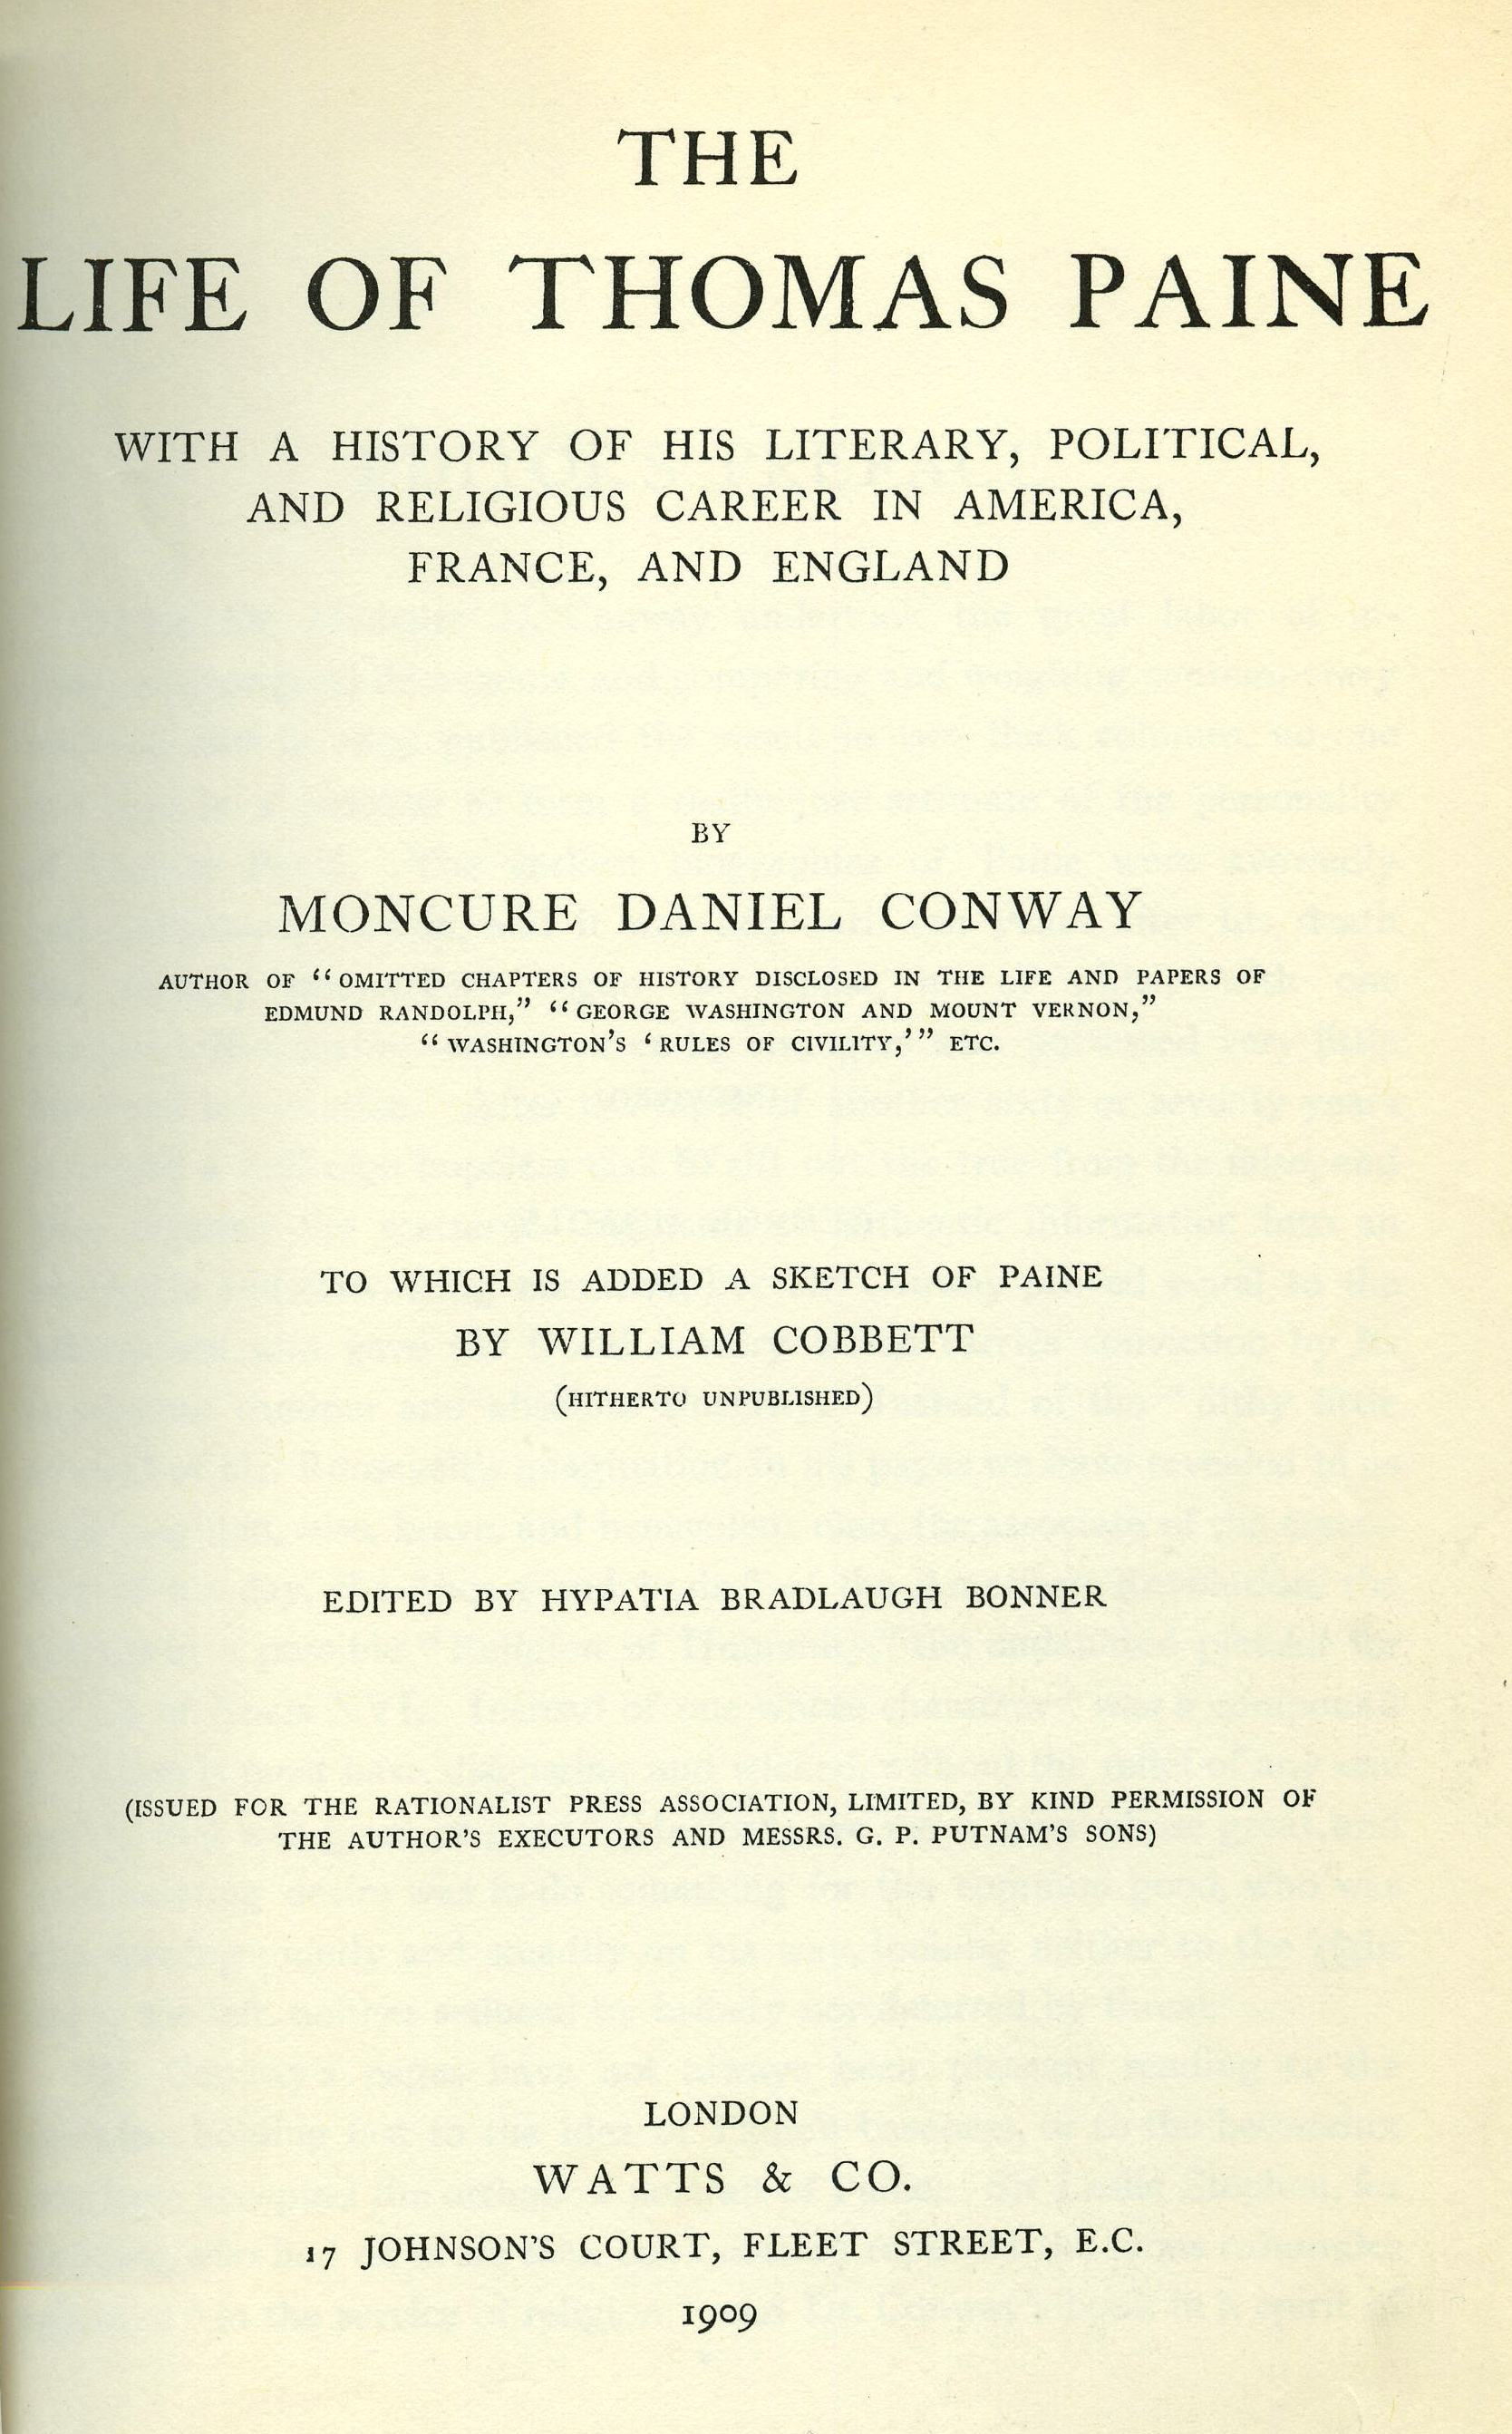 thomas paine friends inc the life of thomas paine moncure conway 1893 made available online by google books